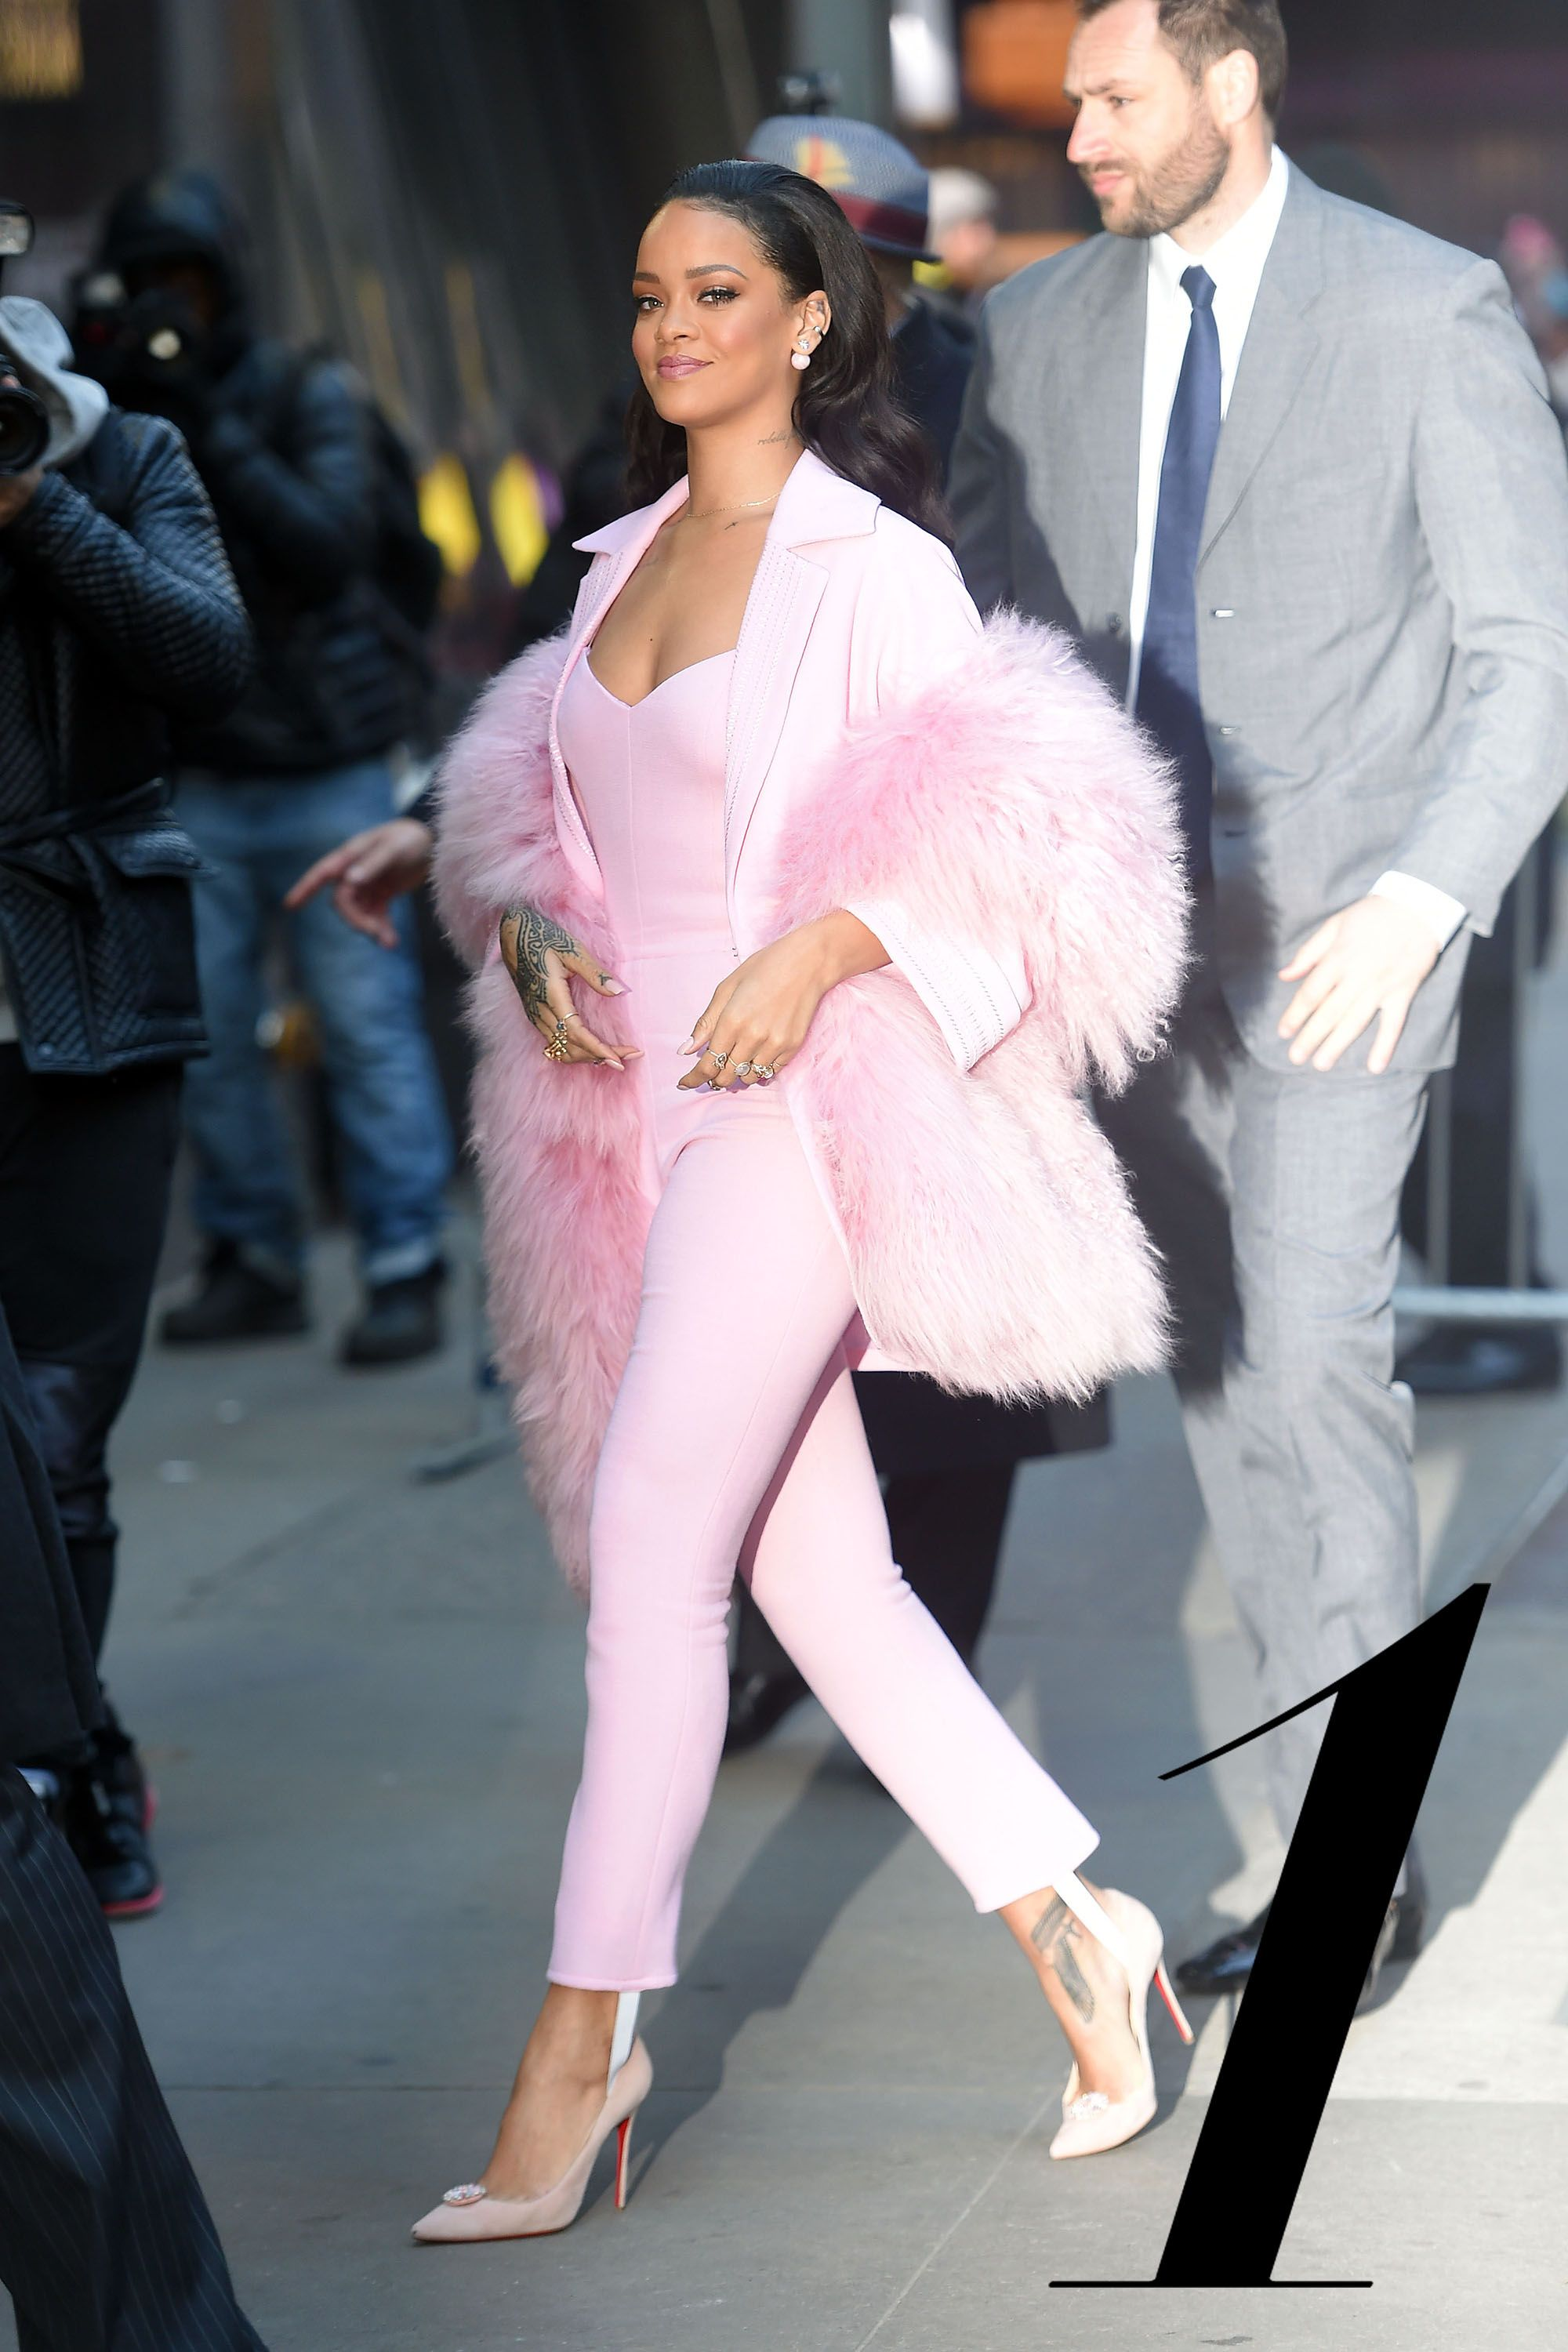 NEW YORK - MARCH 13: Rihanna arrives at Good  Morning America in pink on MARCH 13, 2015 in New York, New York.  (Photo by Josiah Kamau/BuzzFoto via Getty Images)